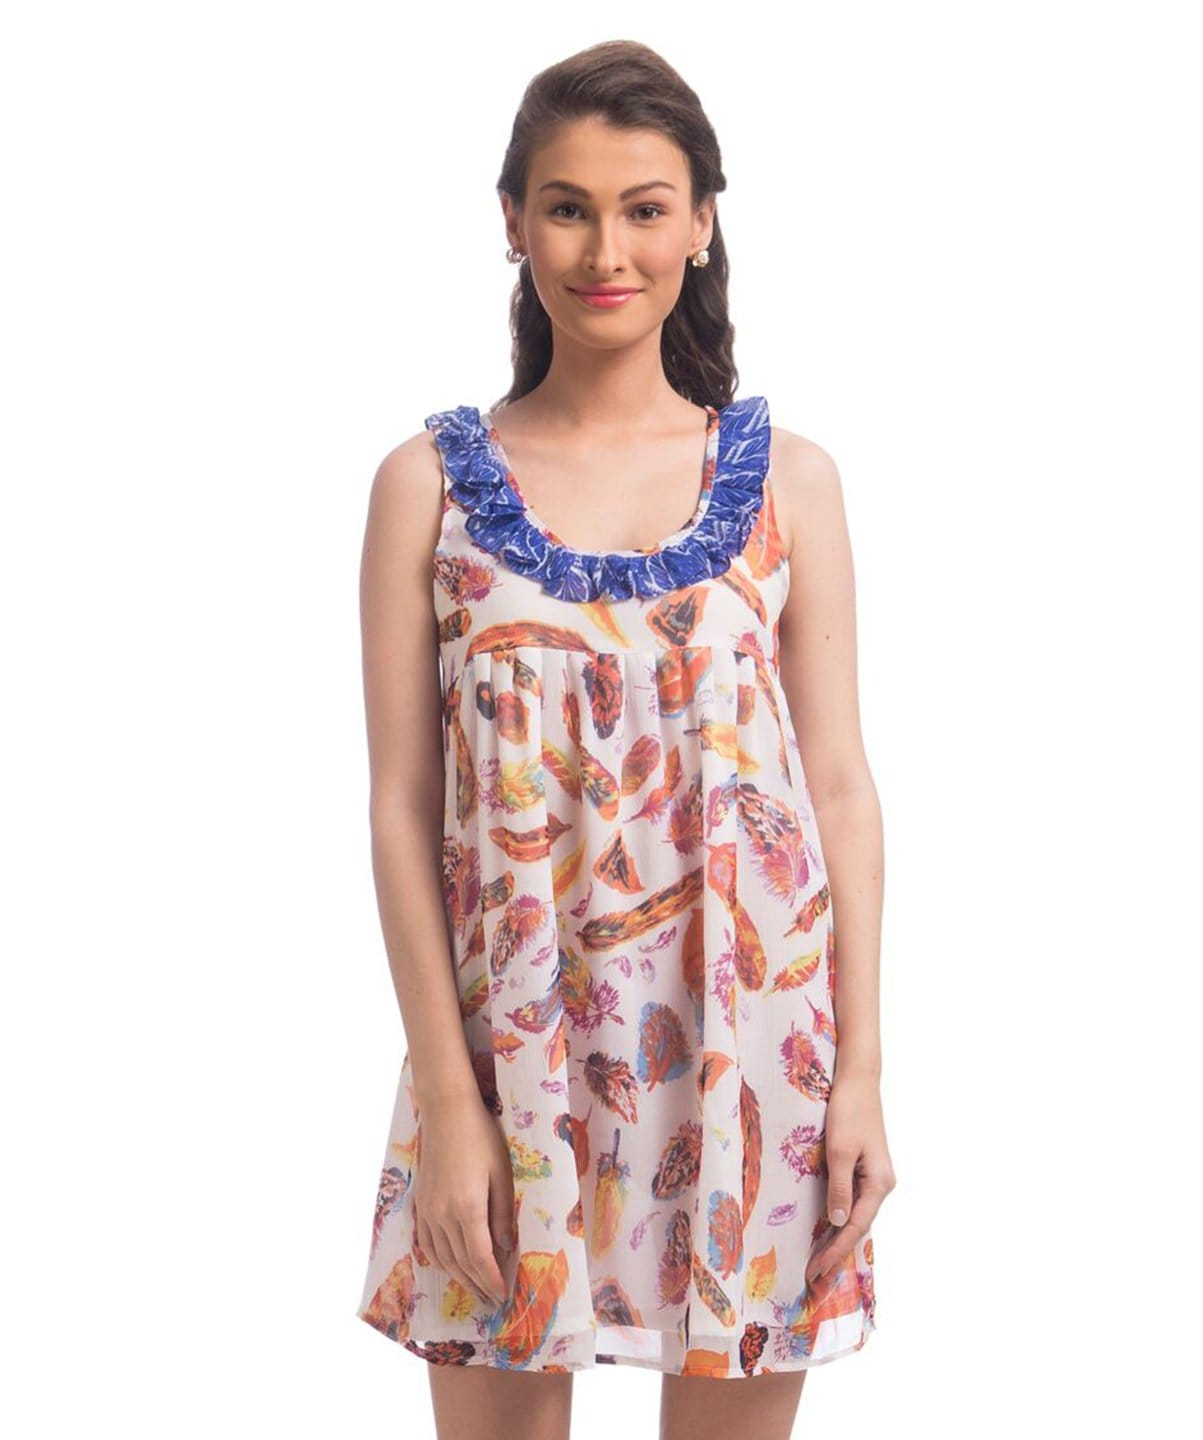 Printed White Ruffle Neck Chiffon Dress - Uptownie